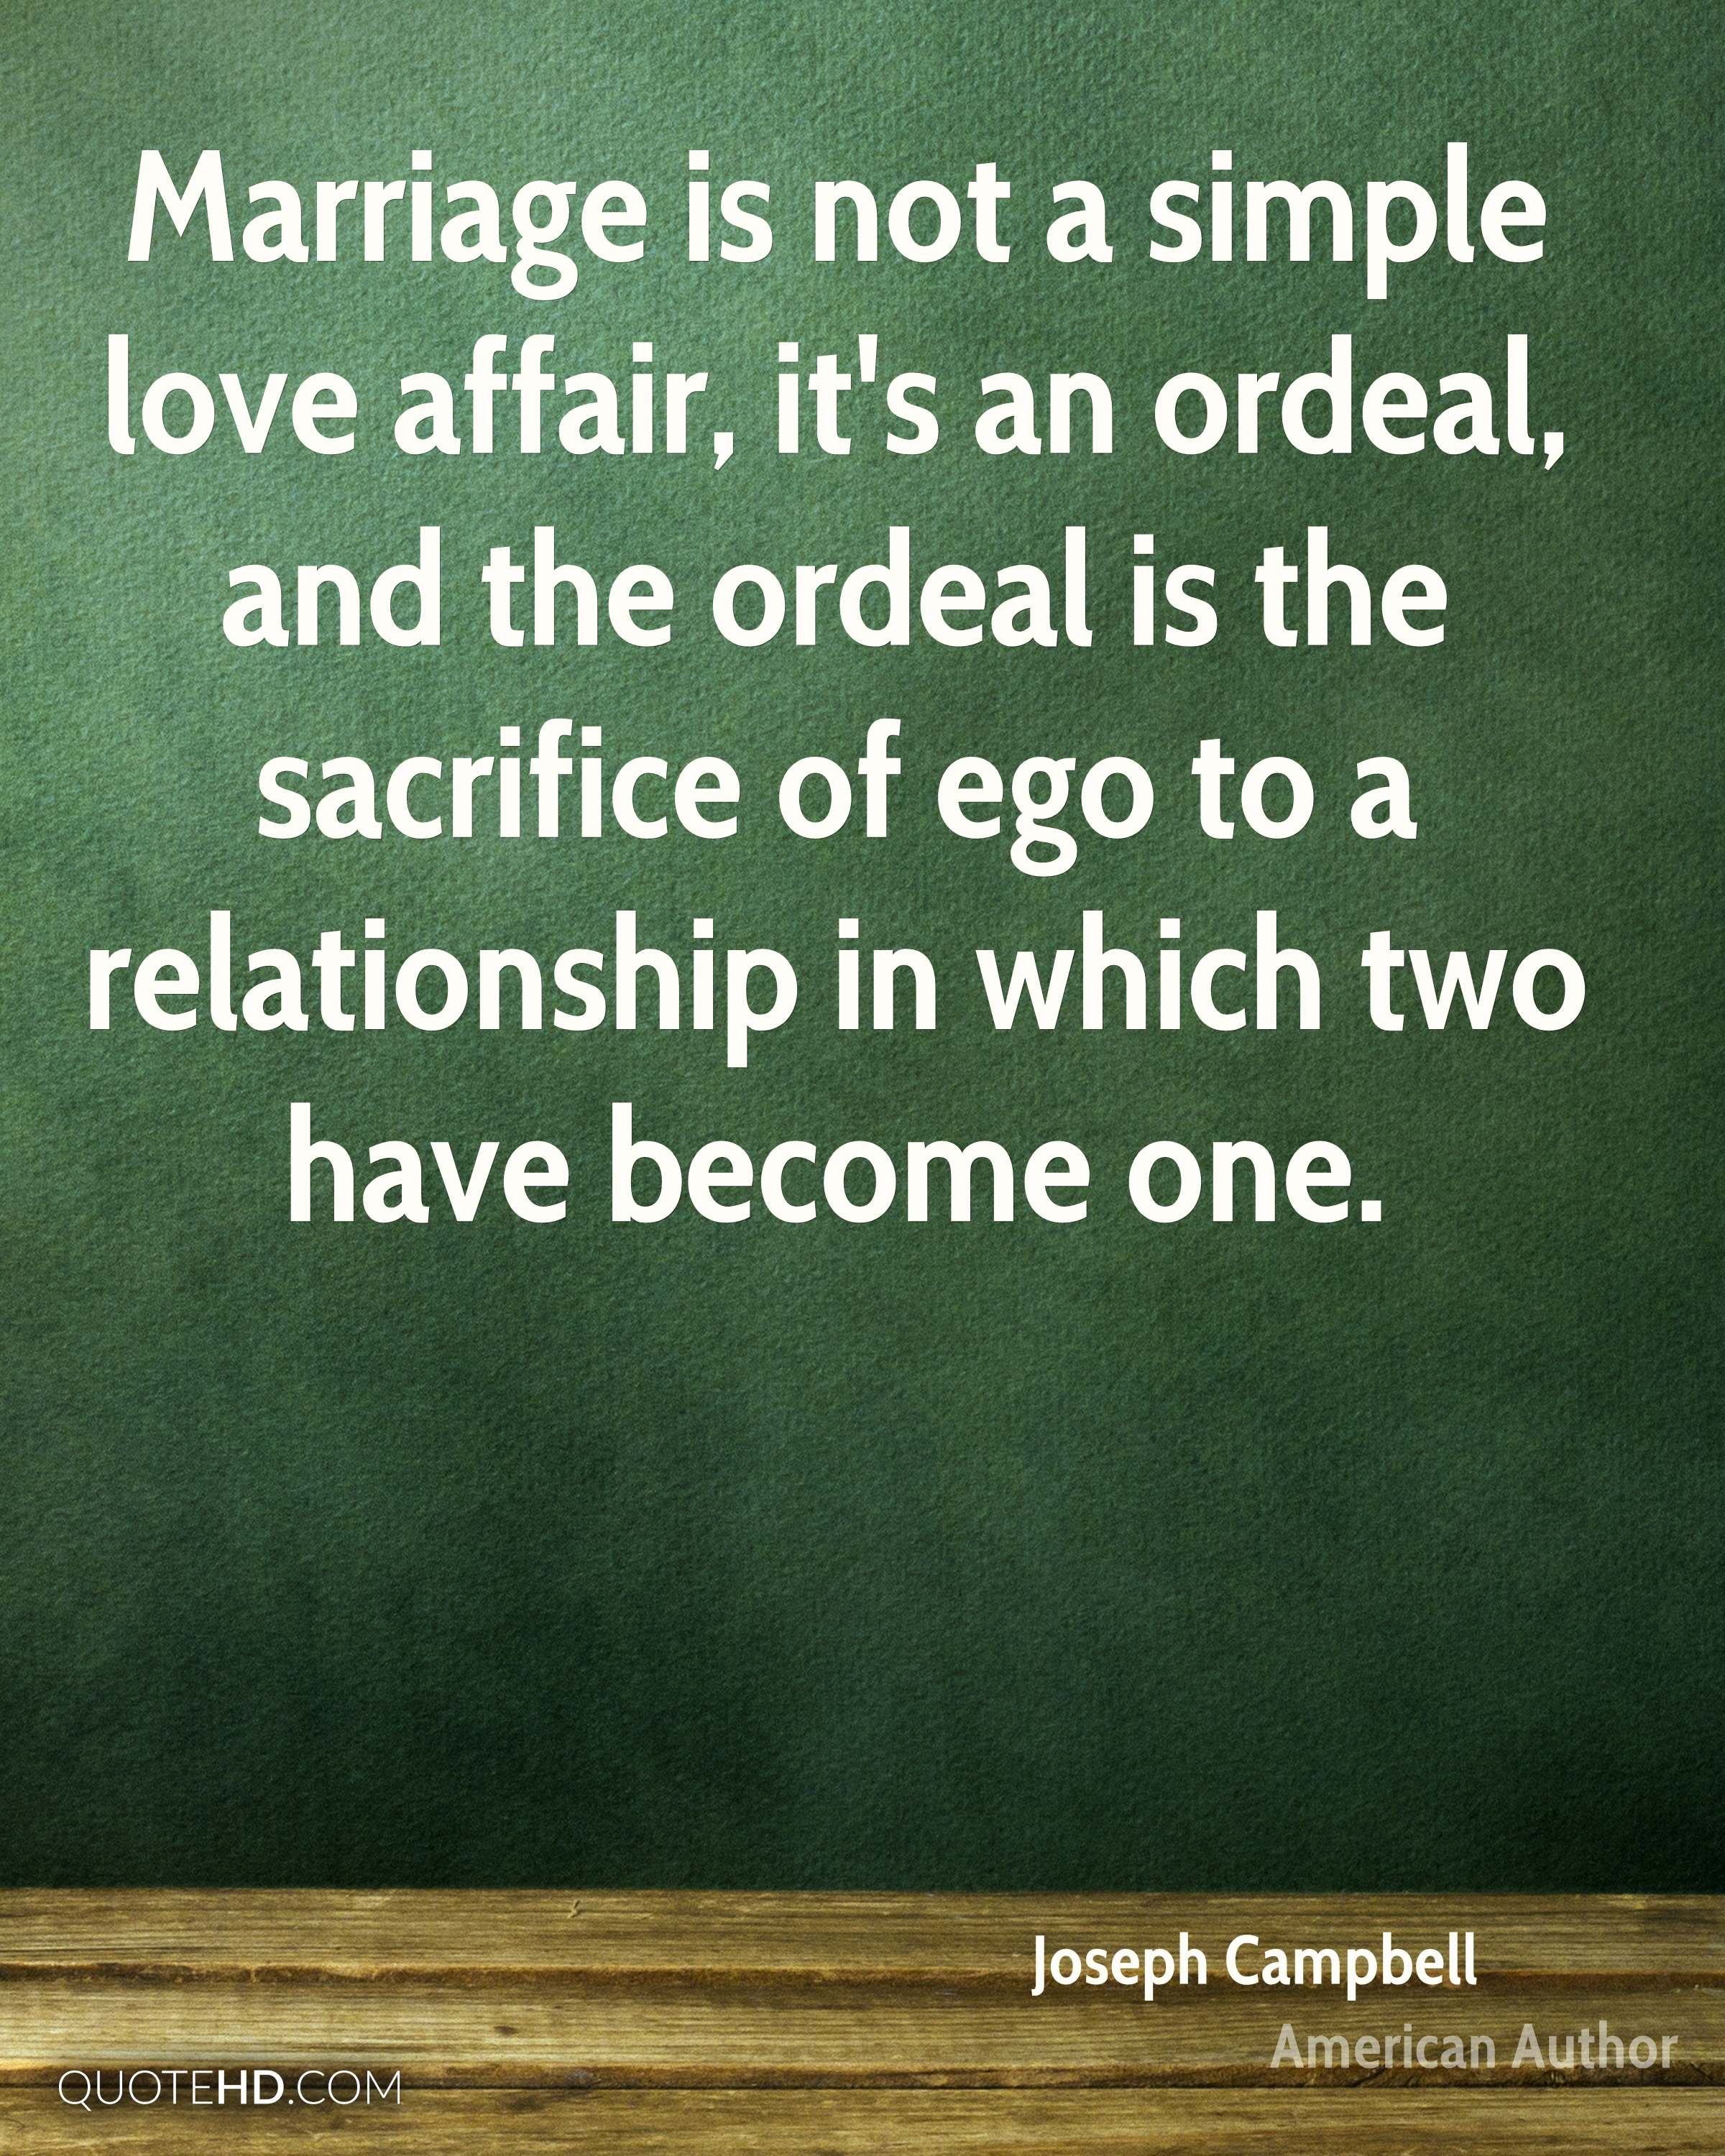 Joseph Campbell Marriage Quotes